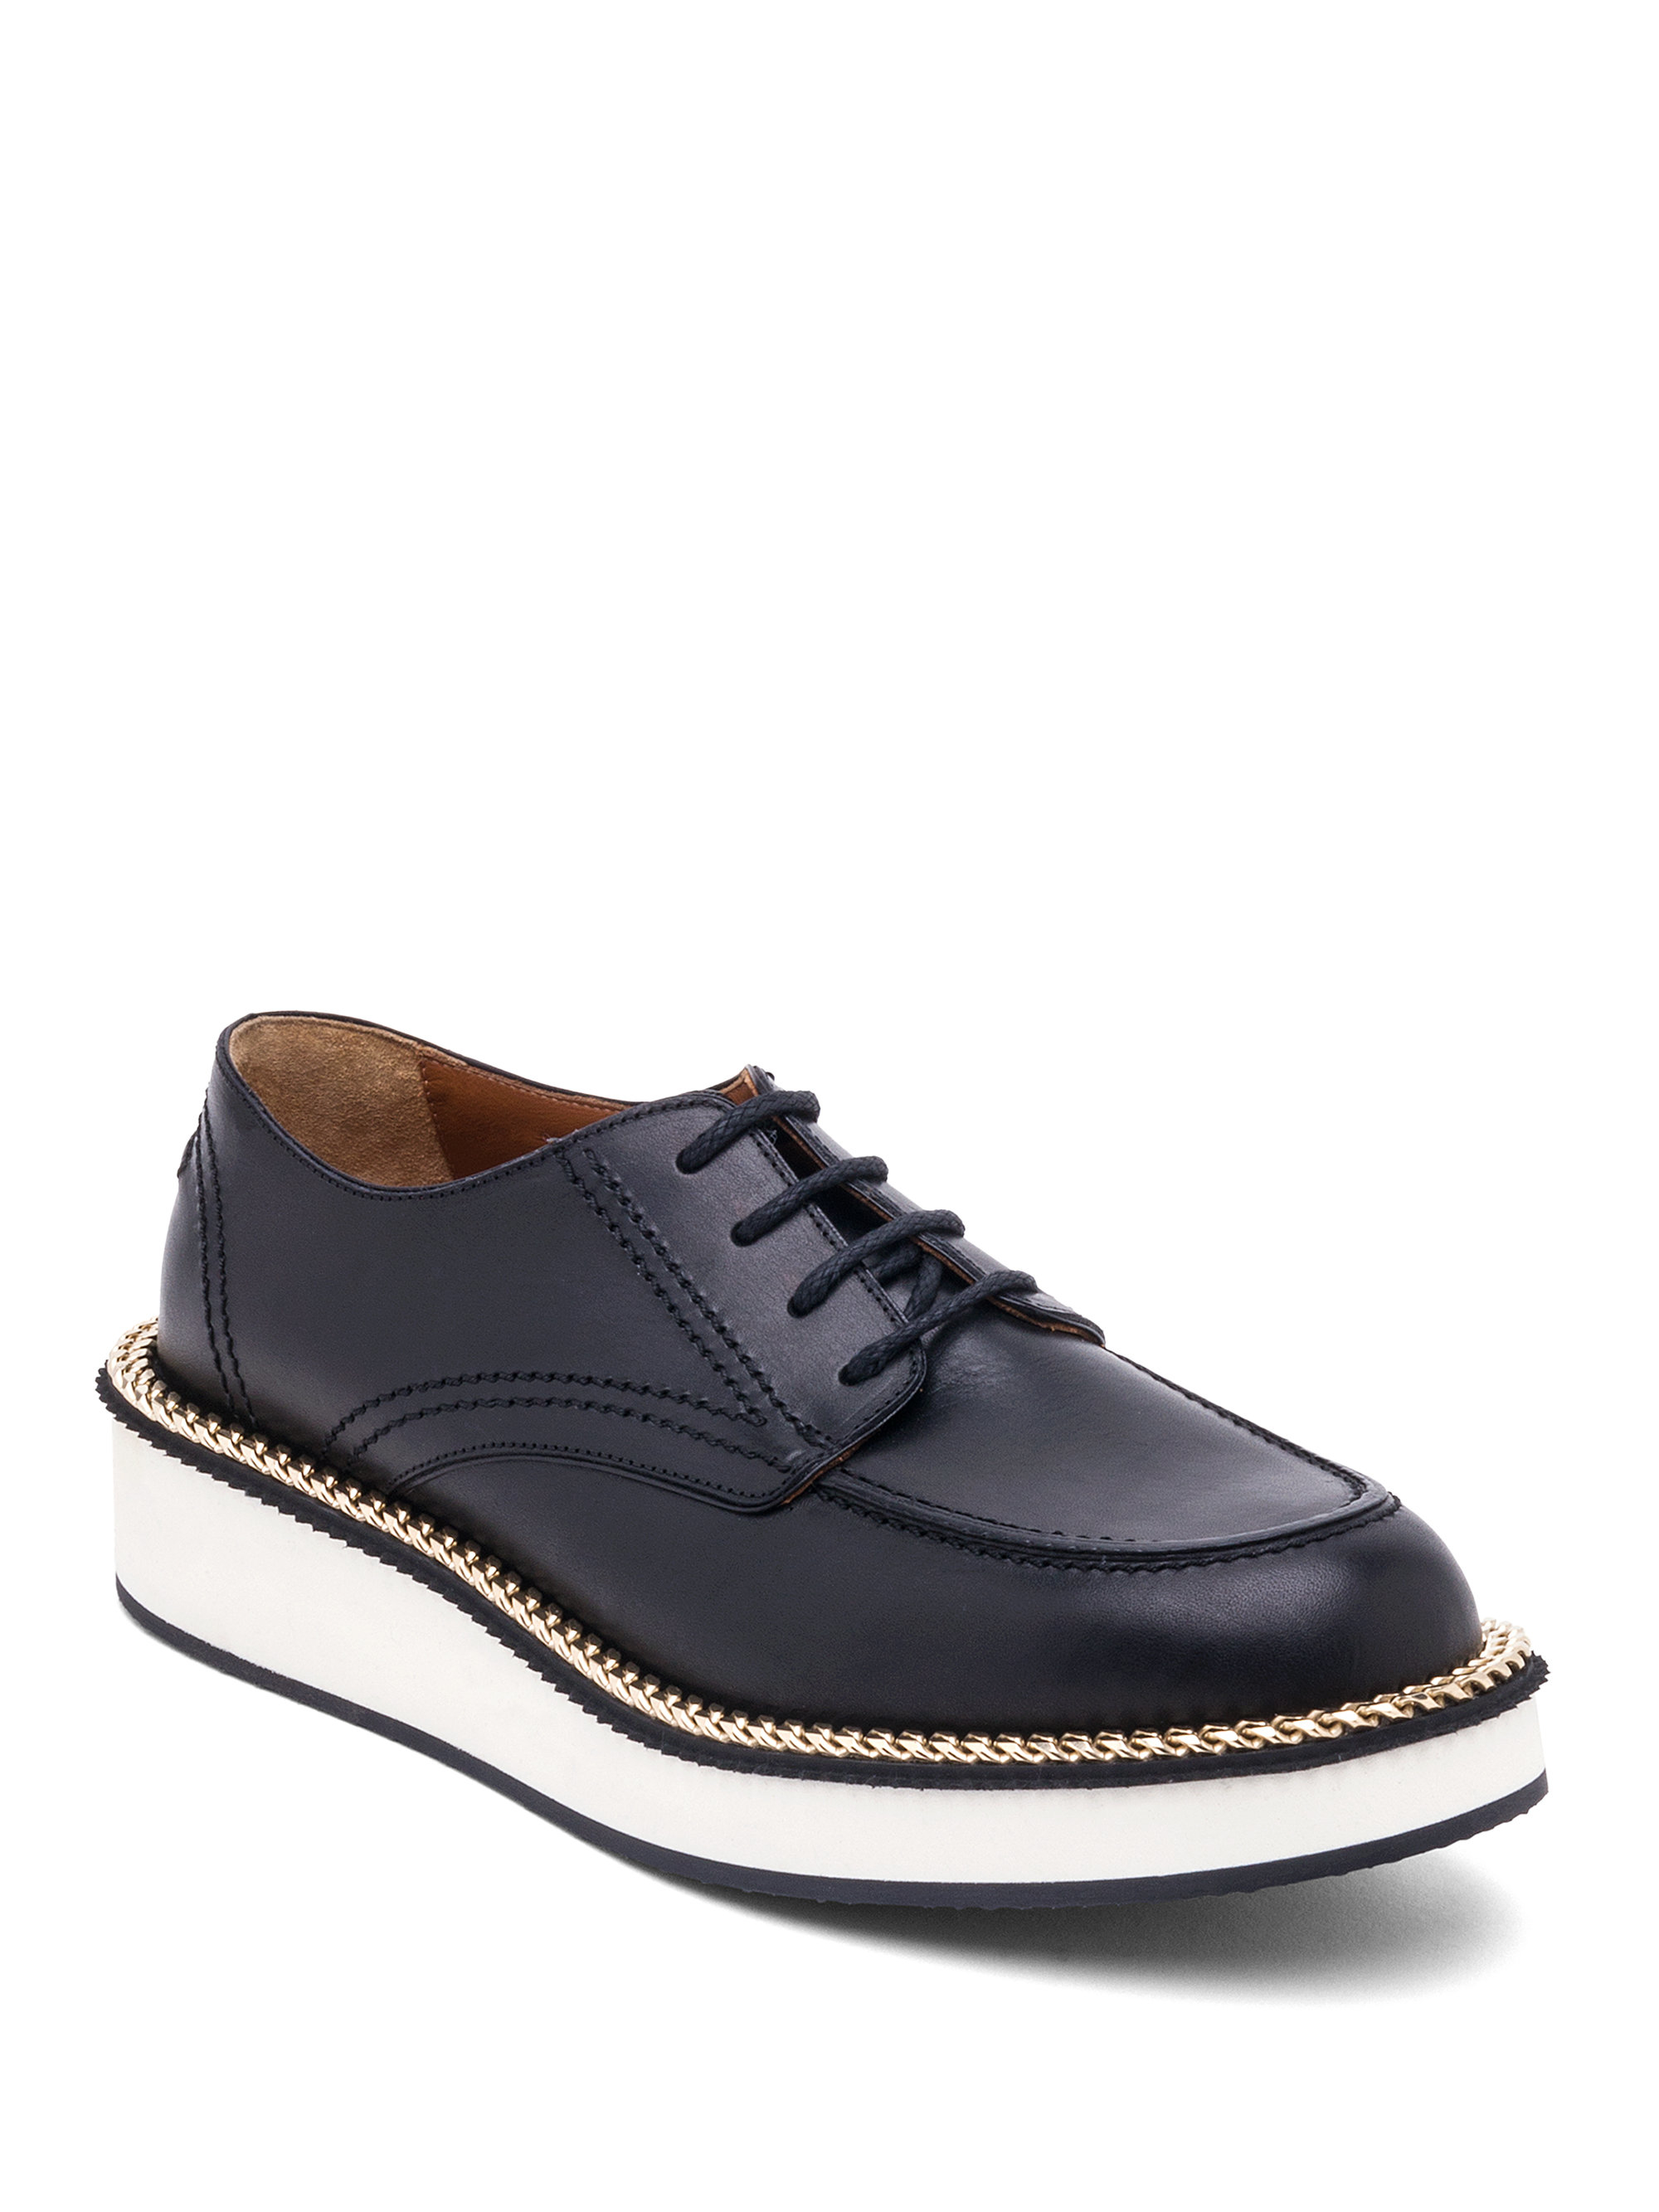 Givenchy Canada Shoes